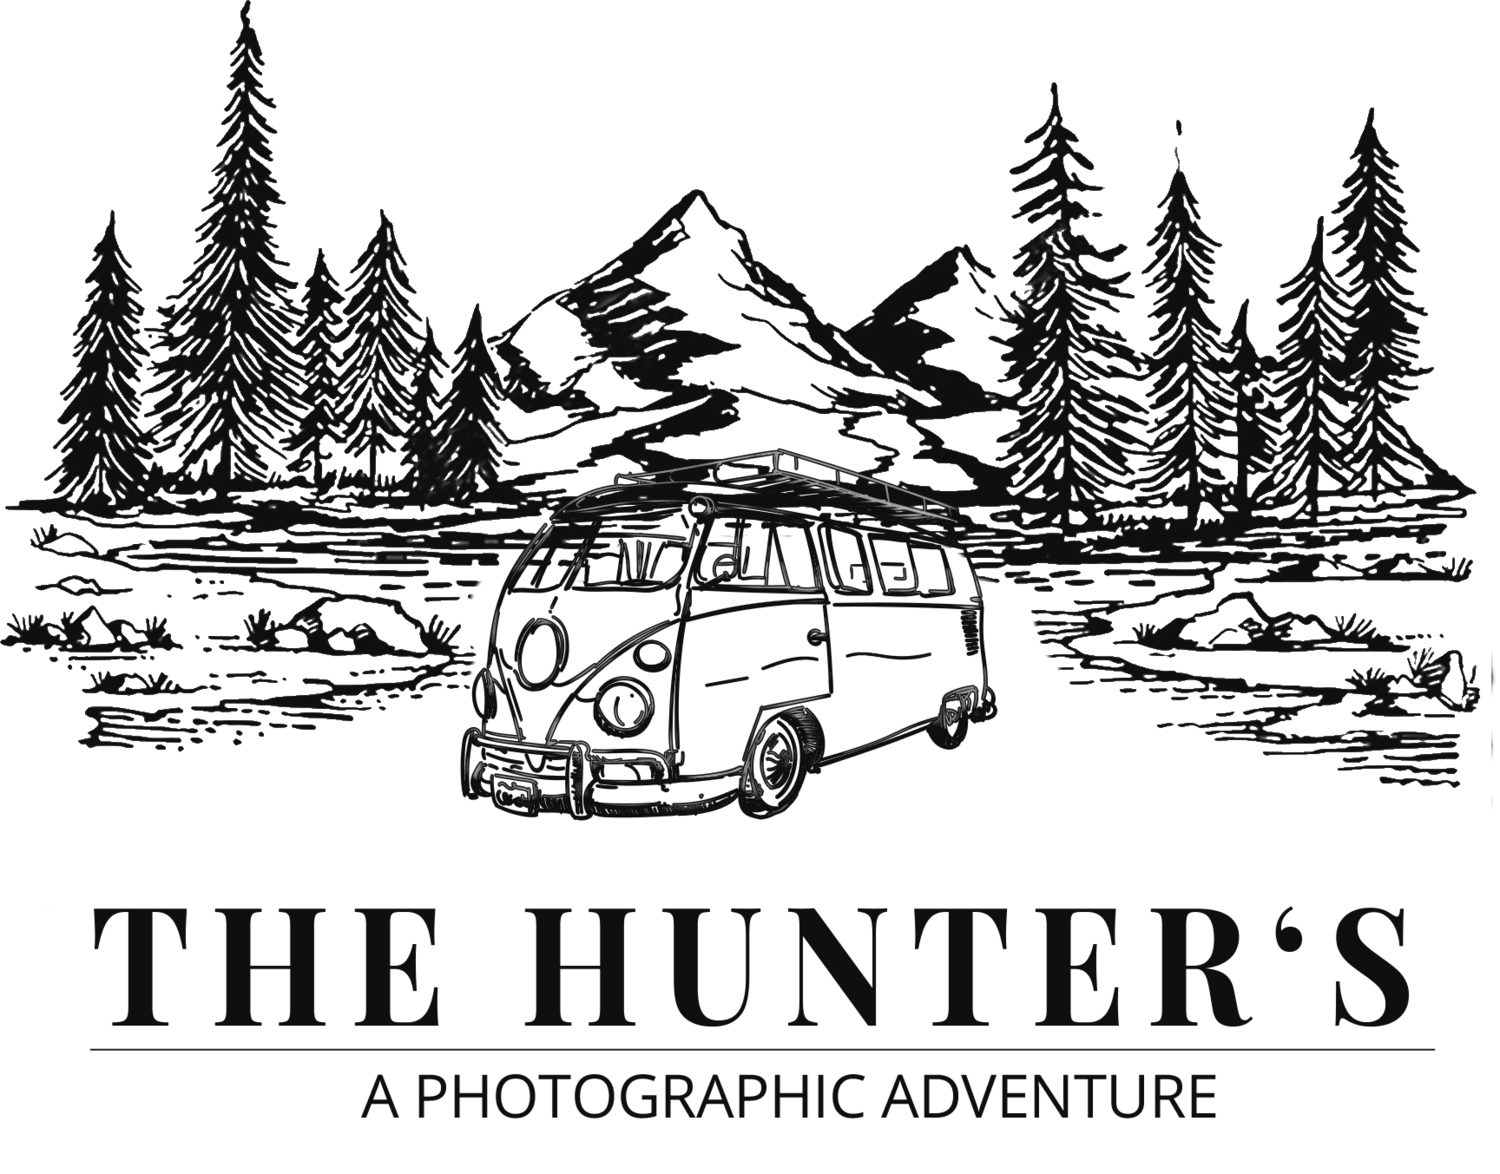 The Hunter's Photography